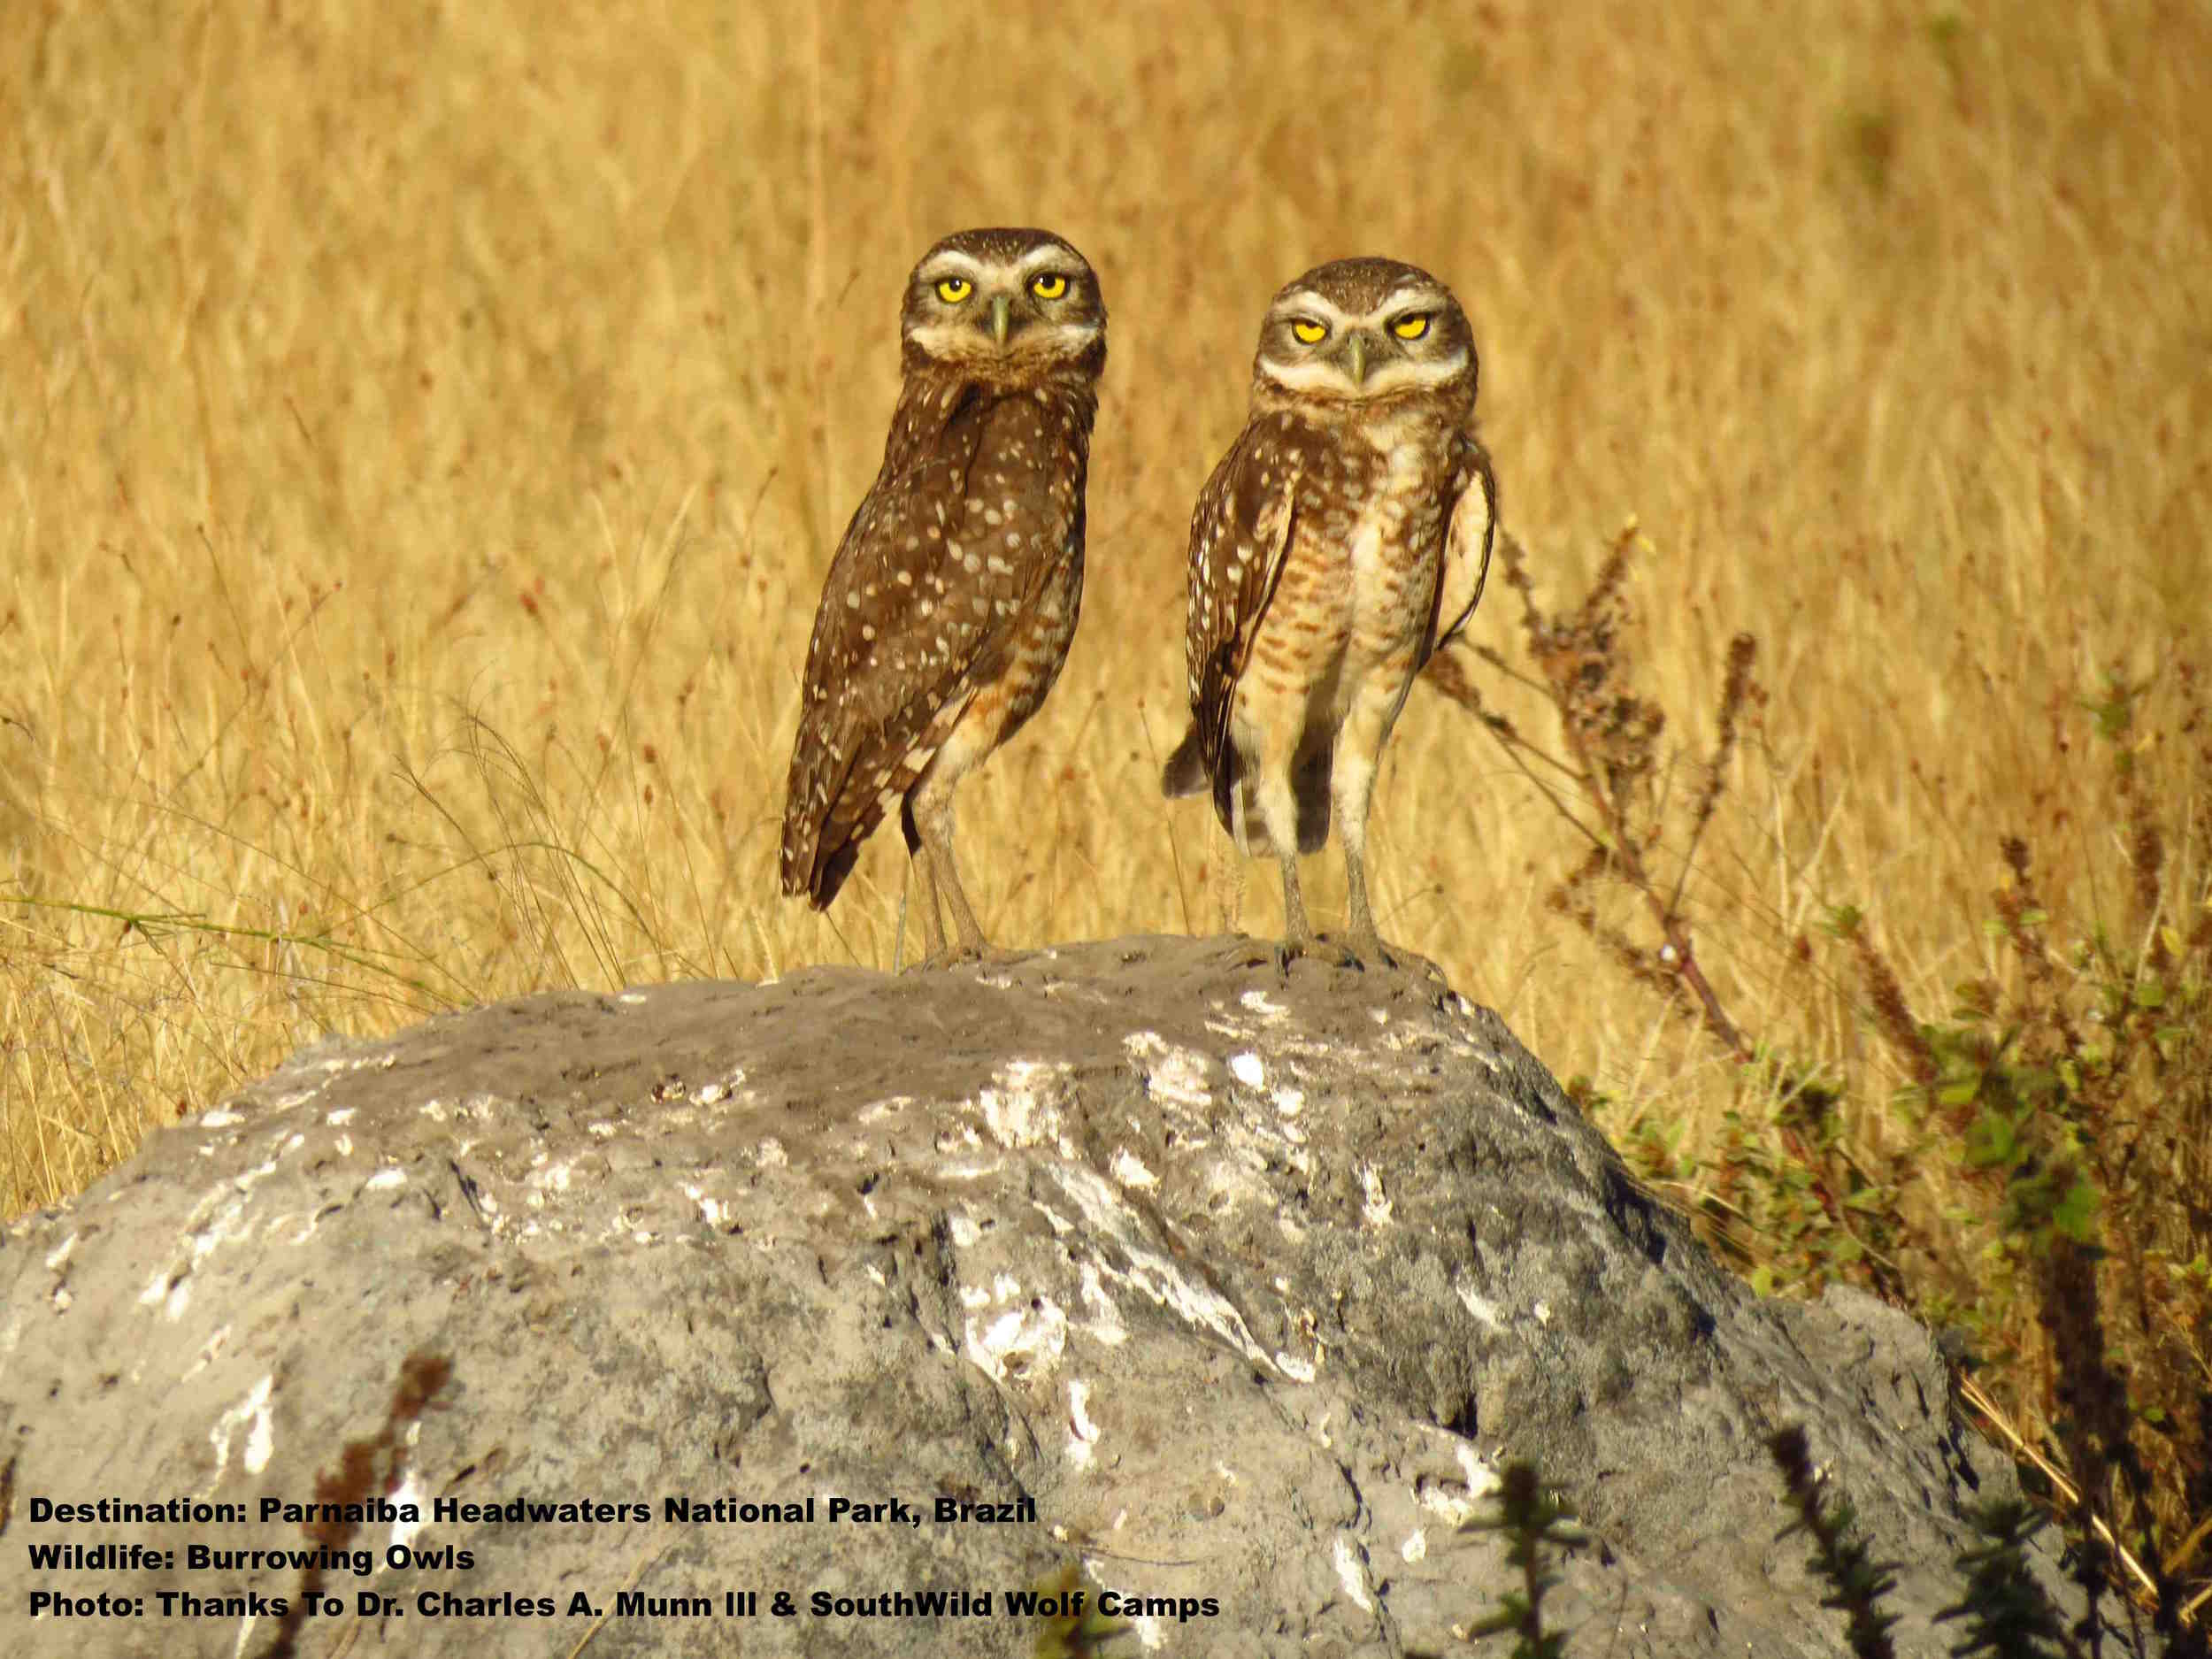 BE WISE! ALWYS DO YOUR VISA, VACCINATION, AND BEST PRACTICES RESEARCH PRIOR TO FINALIZING TRAVEL PLANS. BURROWING OWLS AT PARNAIBA HEADWATERS NATIONAL PARK. PHOTO: DR. CHARLES A. MUNN III AND SOUTHWILD WOLF CAMPS.